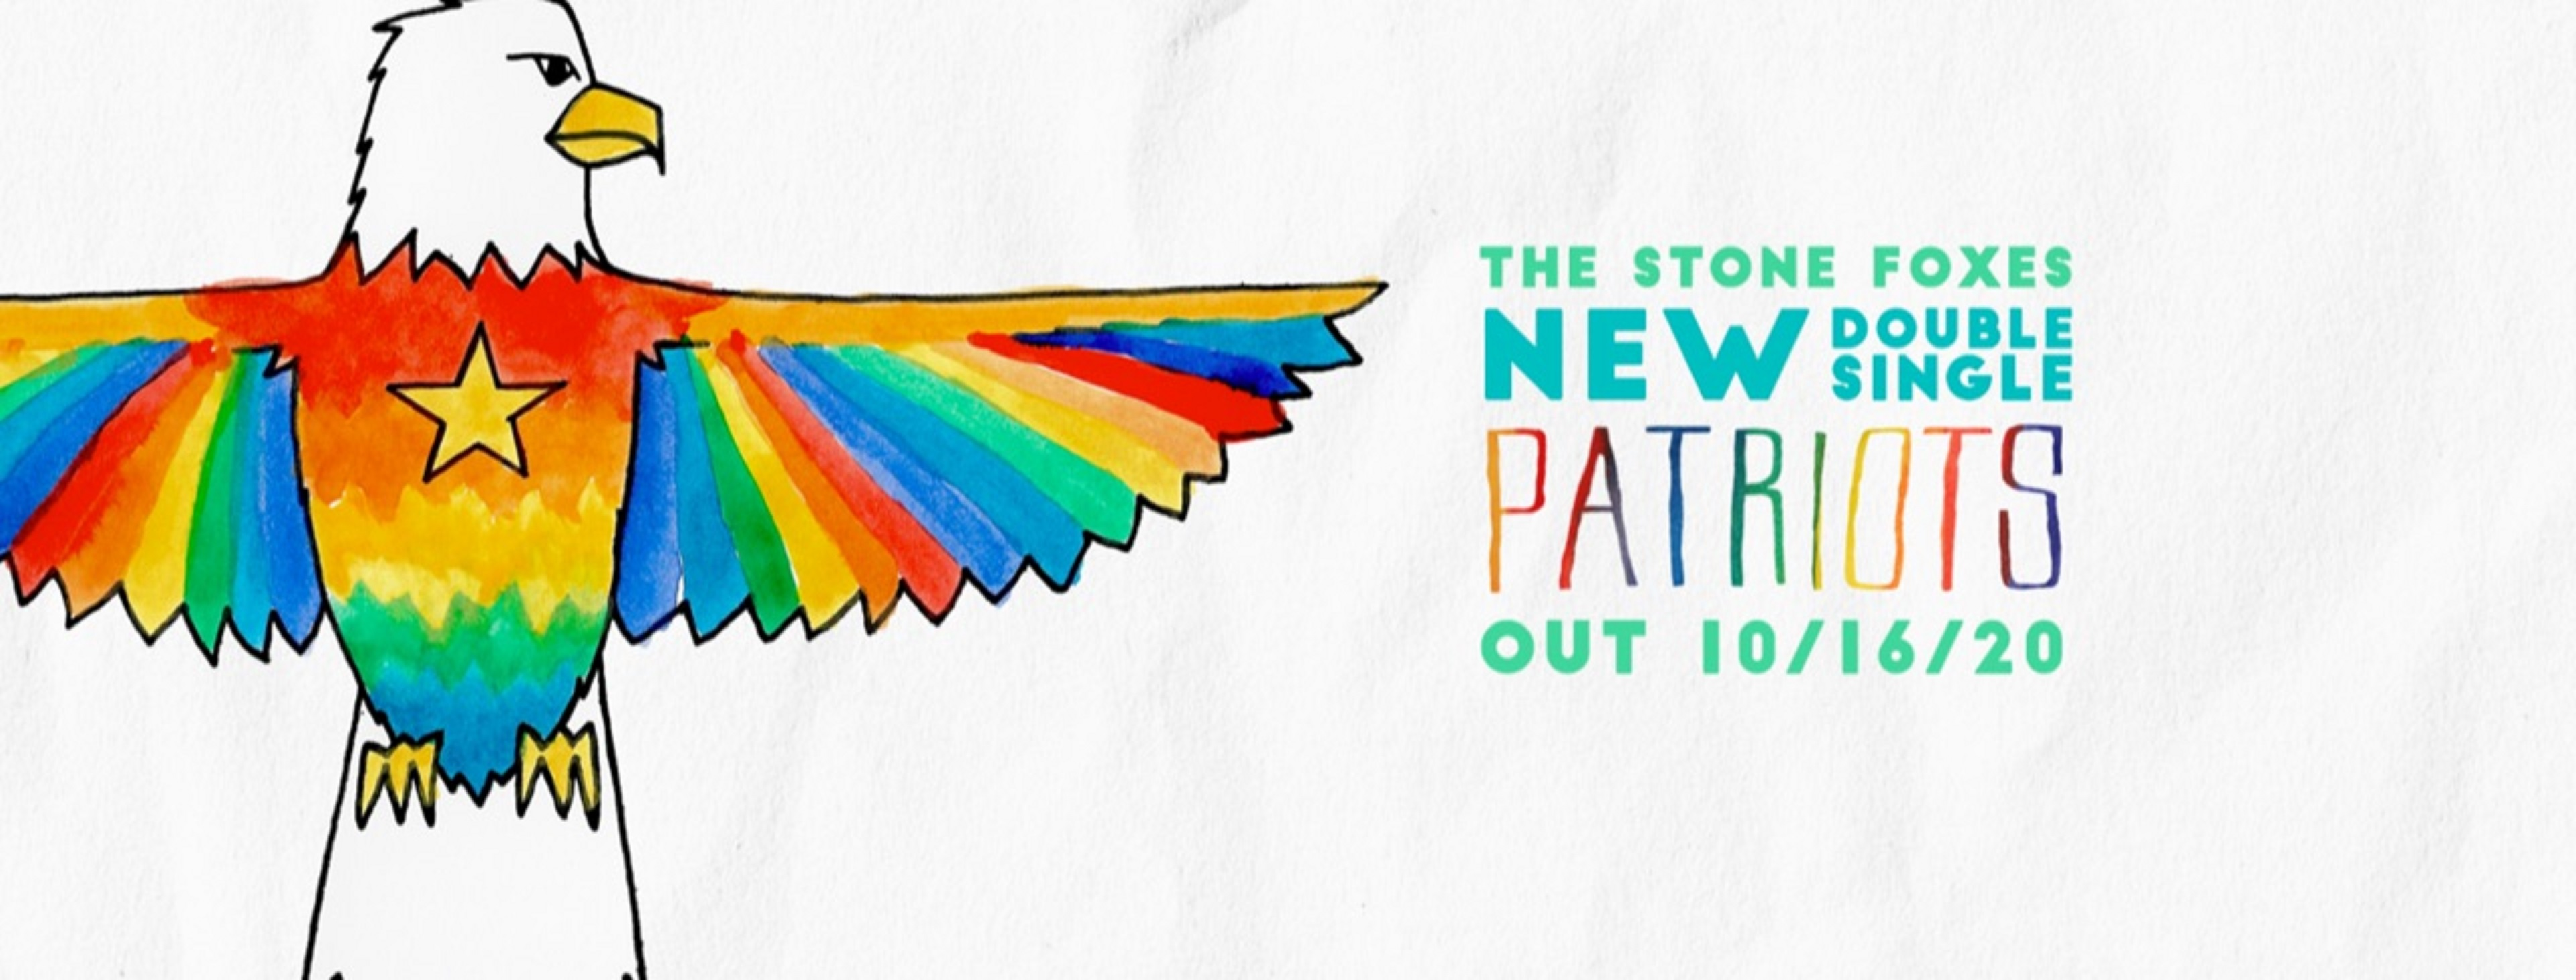 "The Stone Foxes Release New Double Single ""Patriots"""